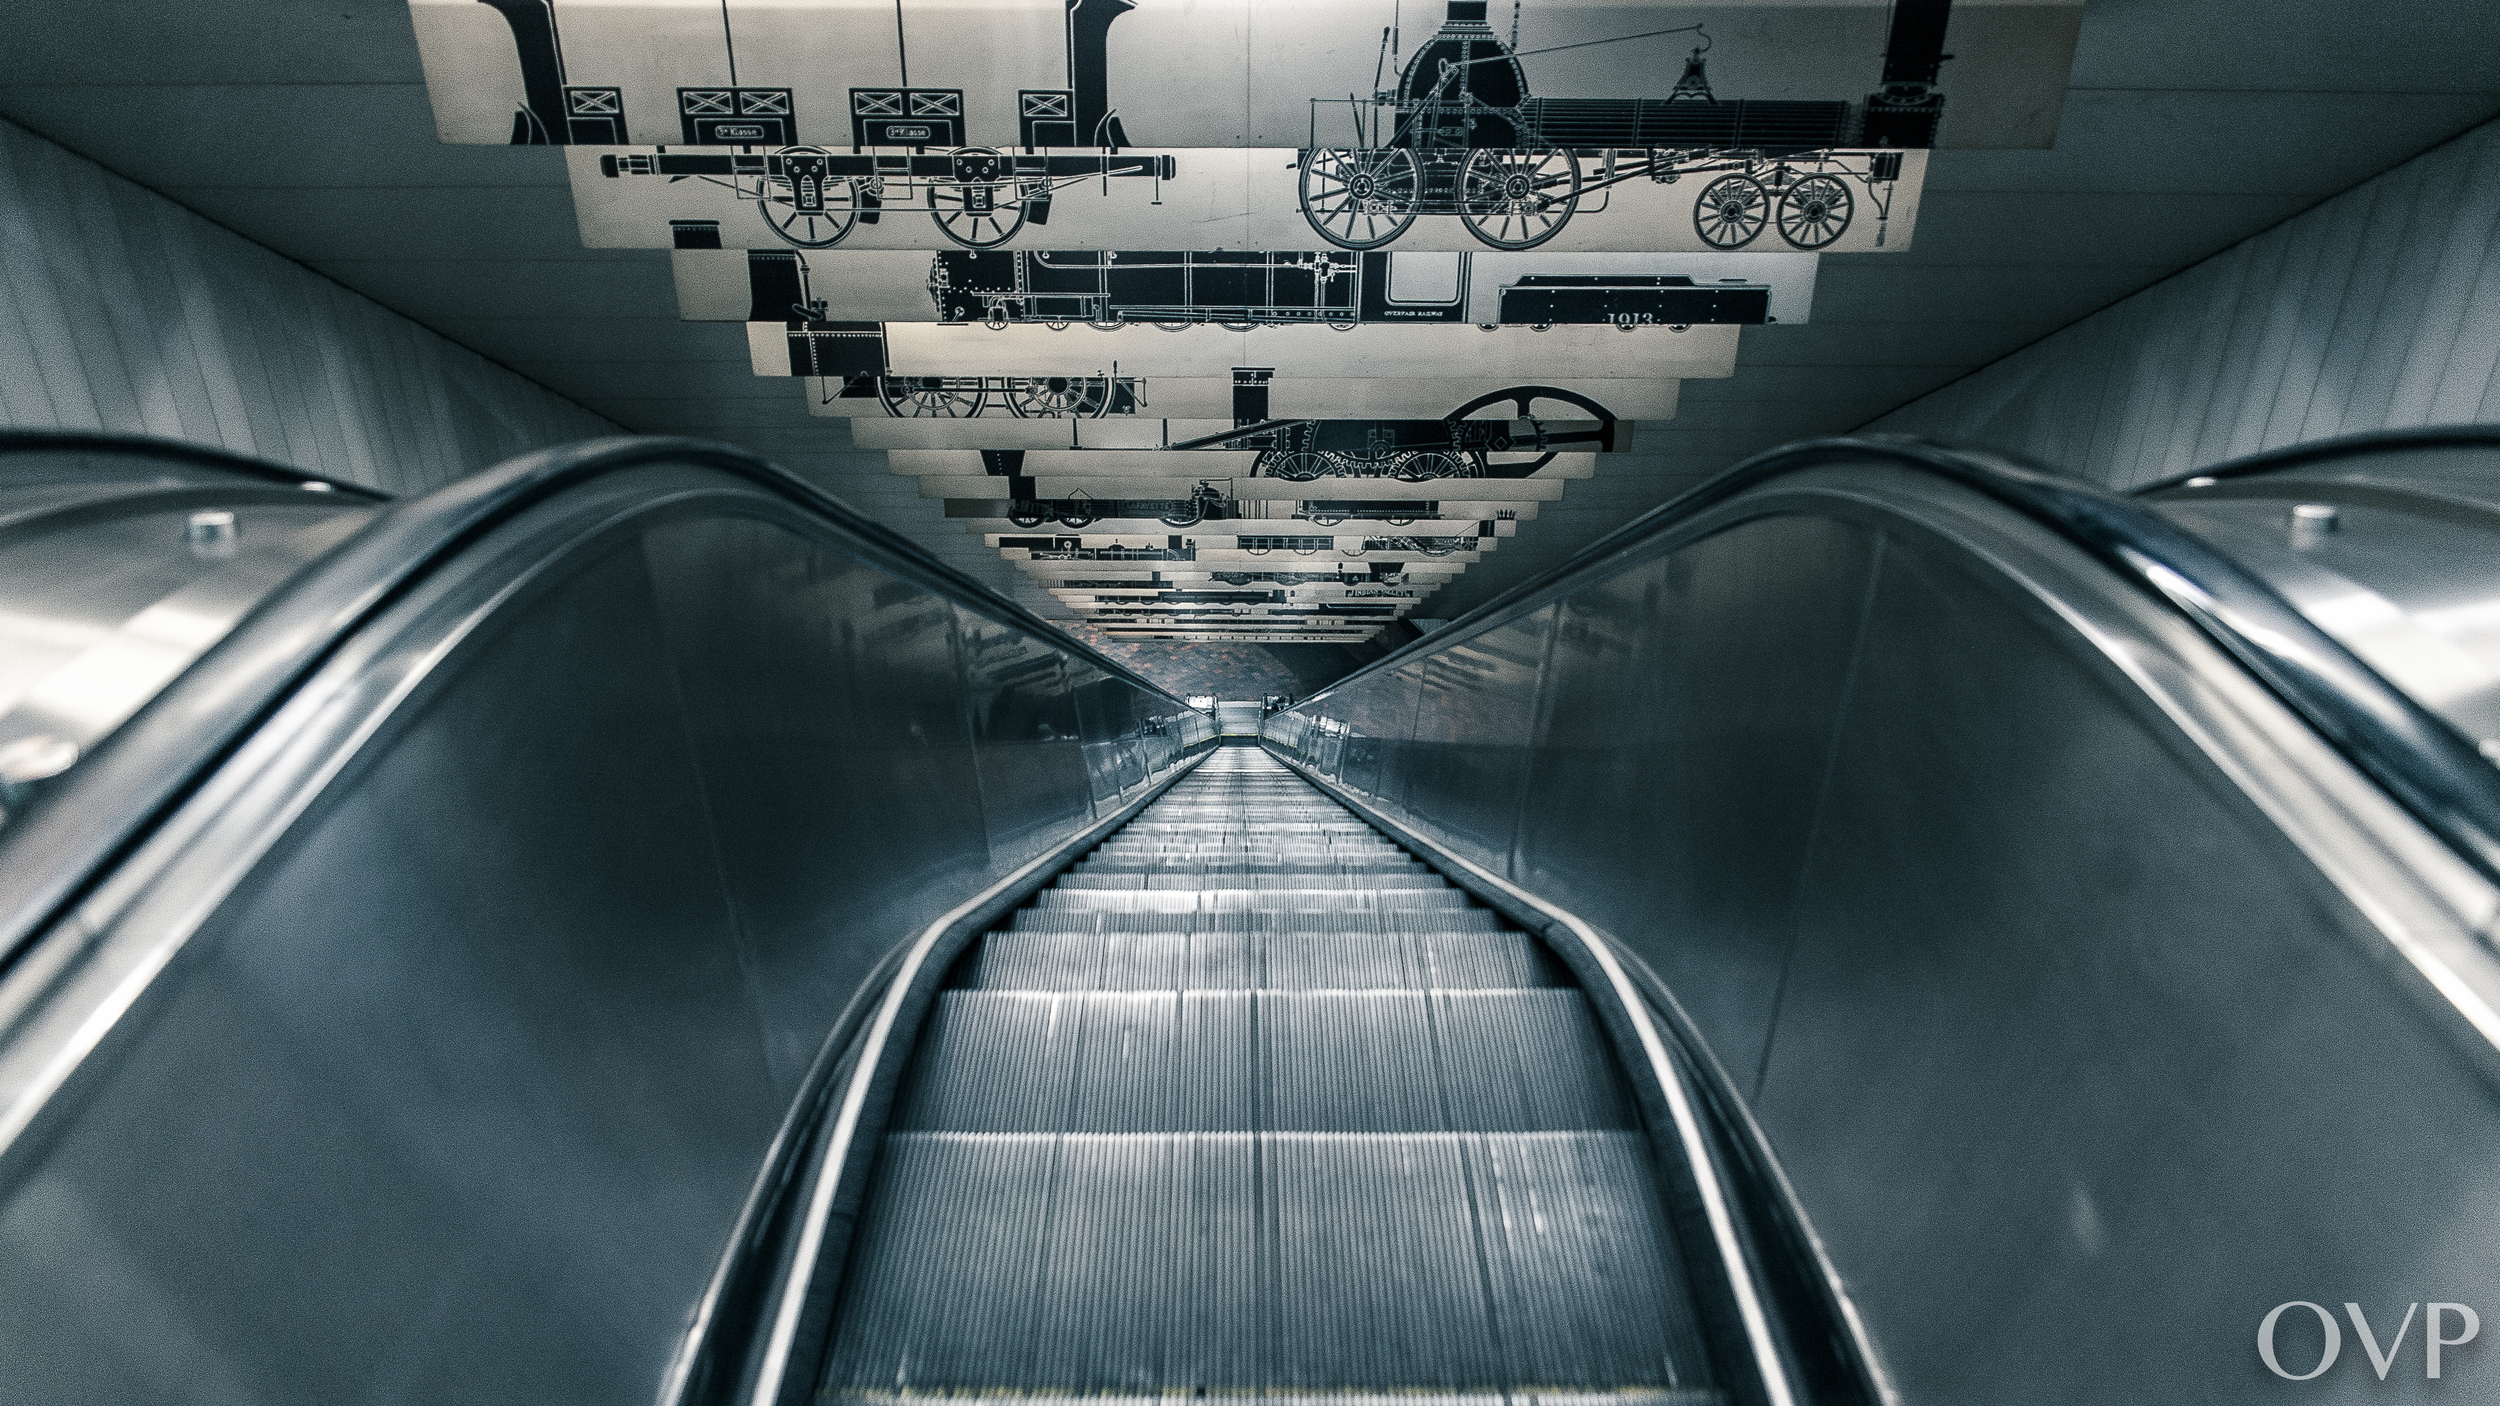 The longest single span of the escalators is 143feet, the longest in the MBTA system.